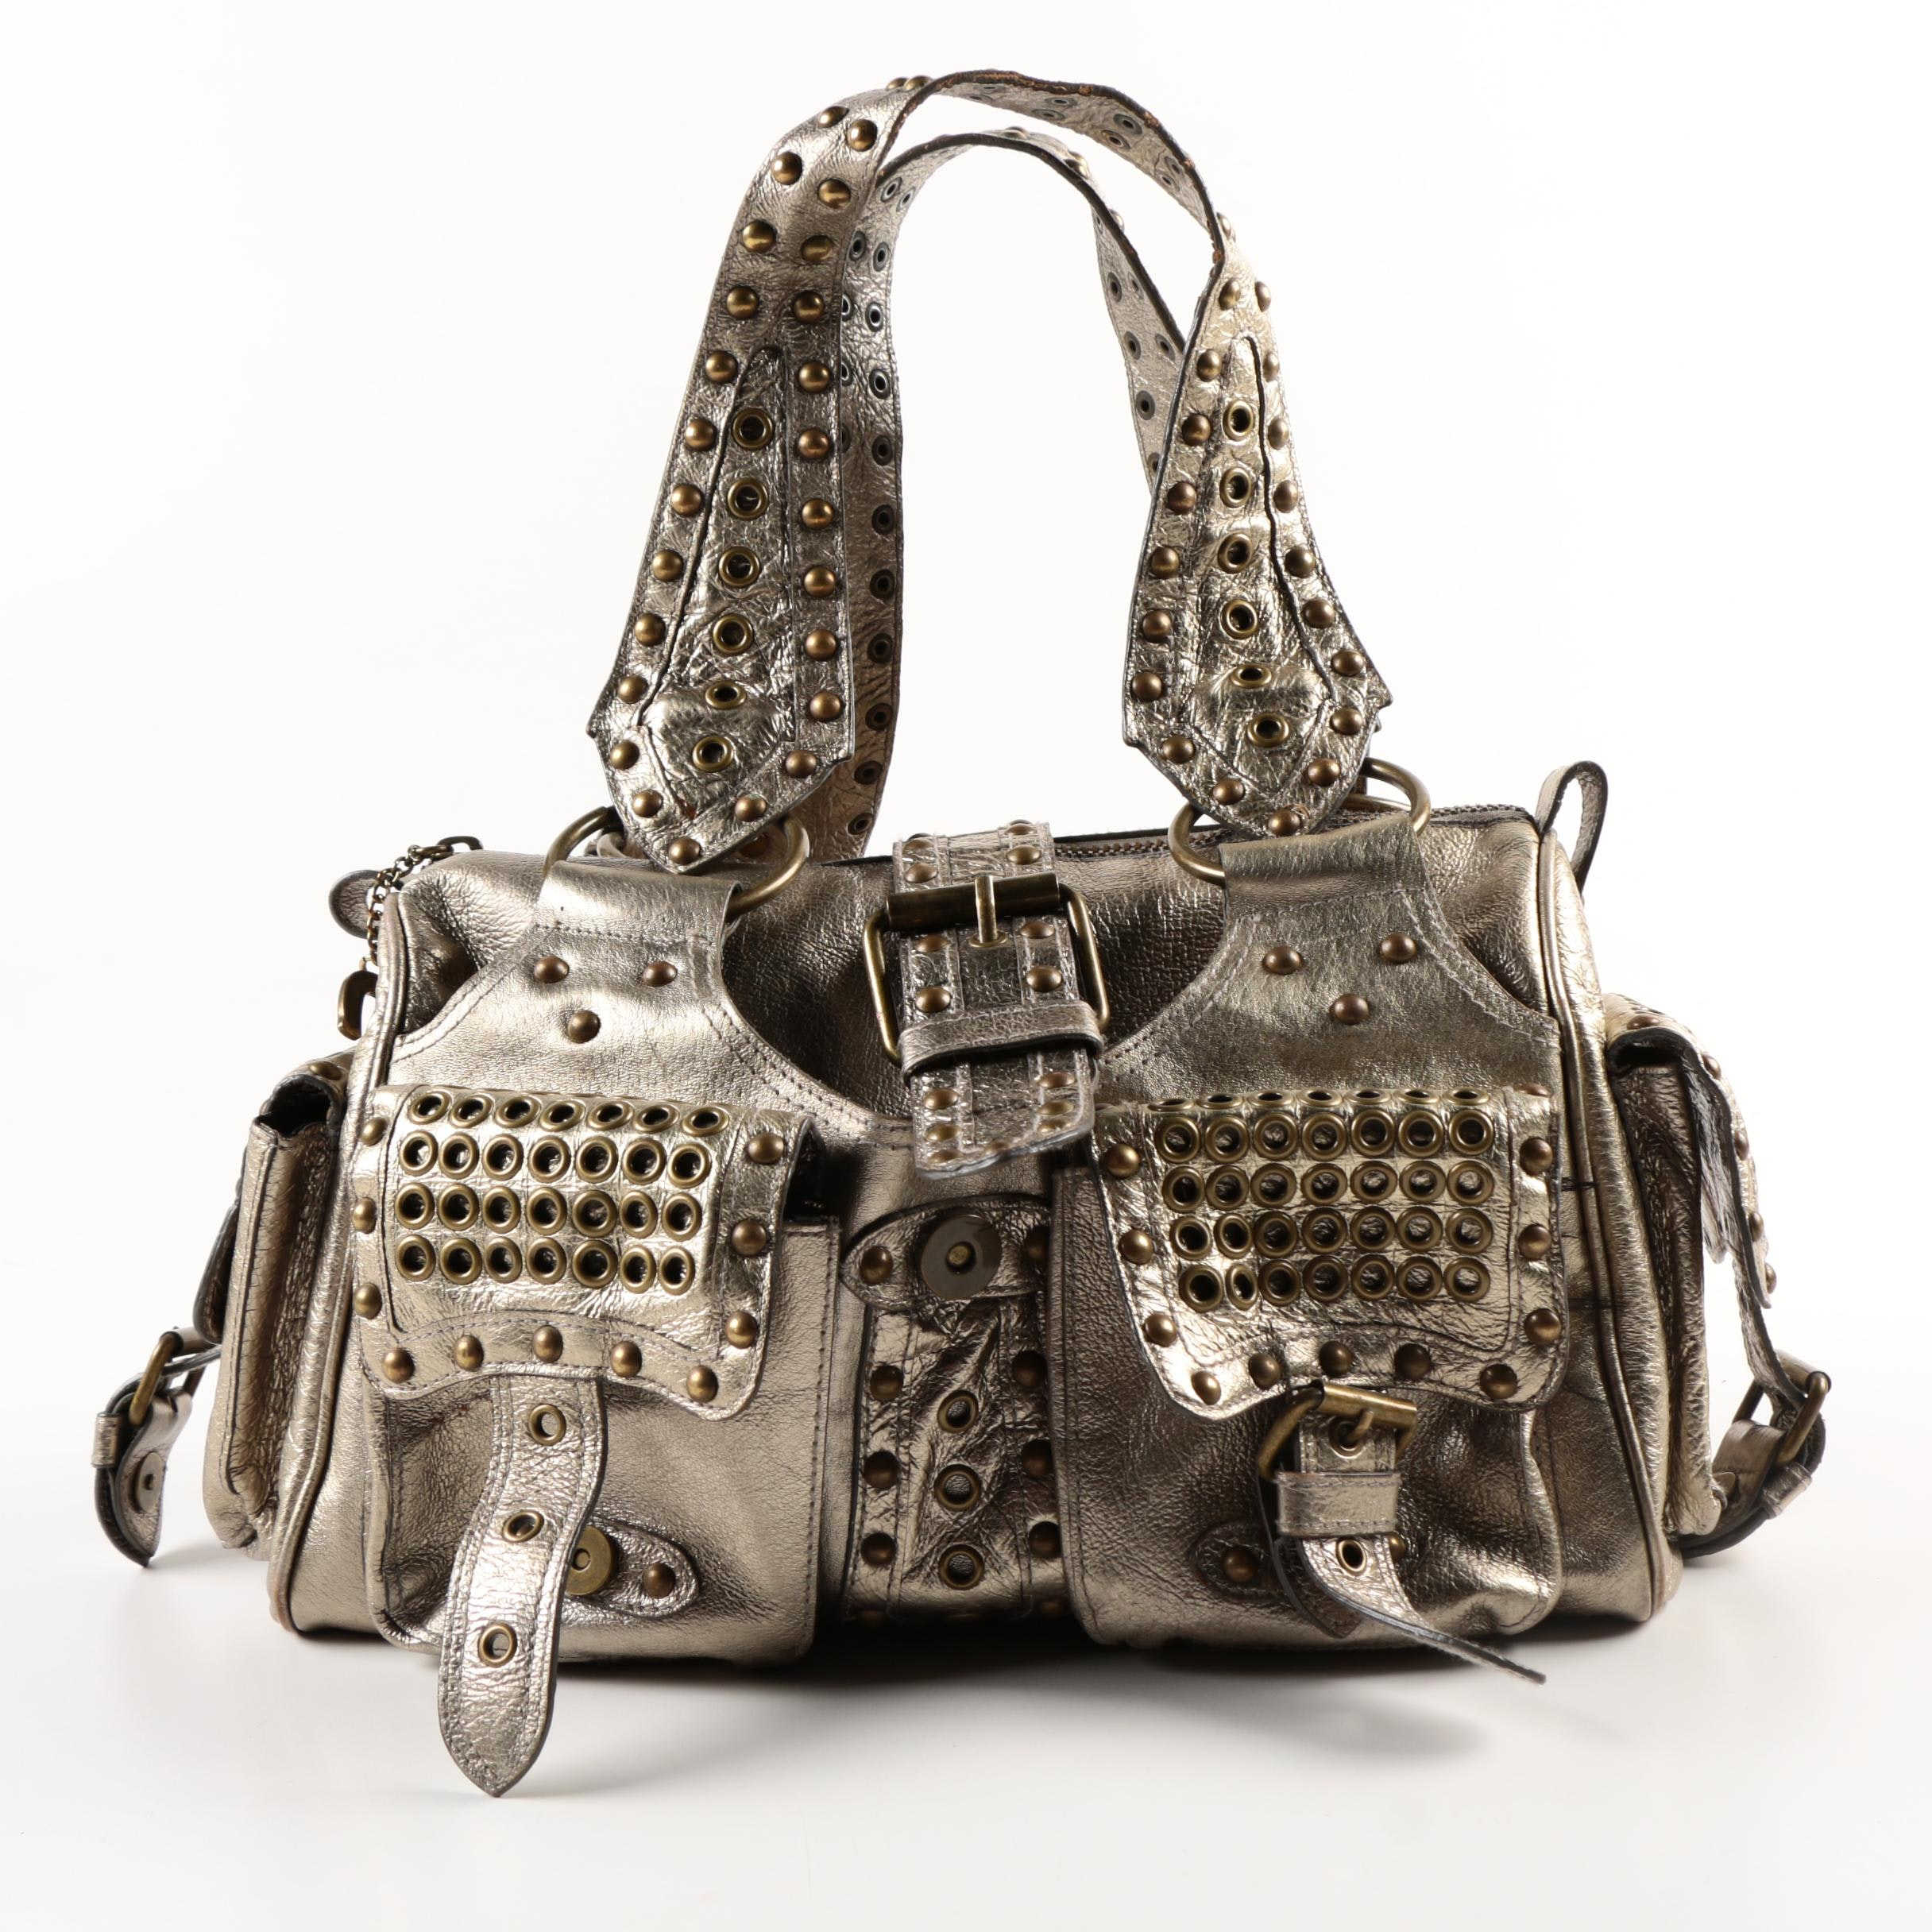 Betsey Johnson Silver Metallic Satchel Handbag